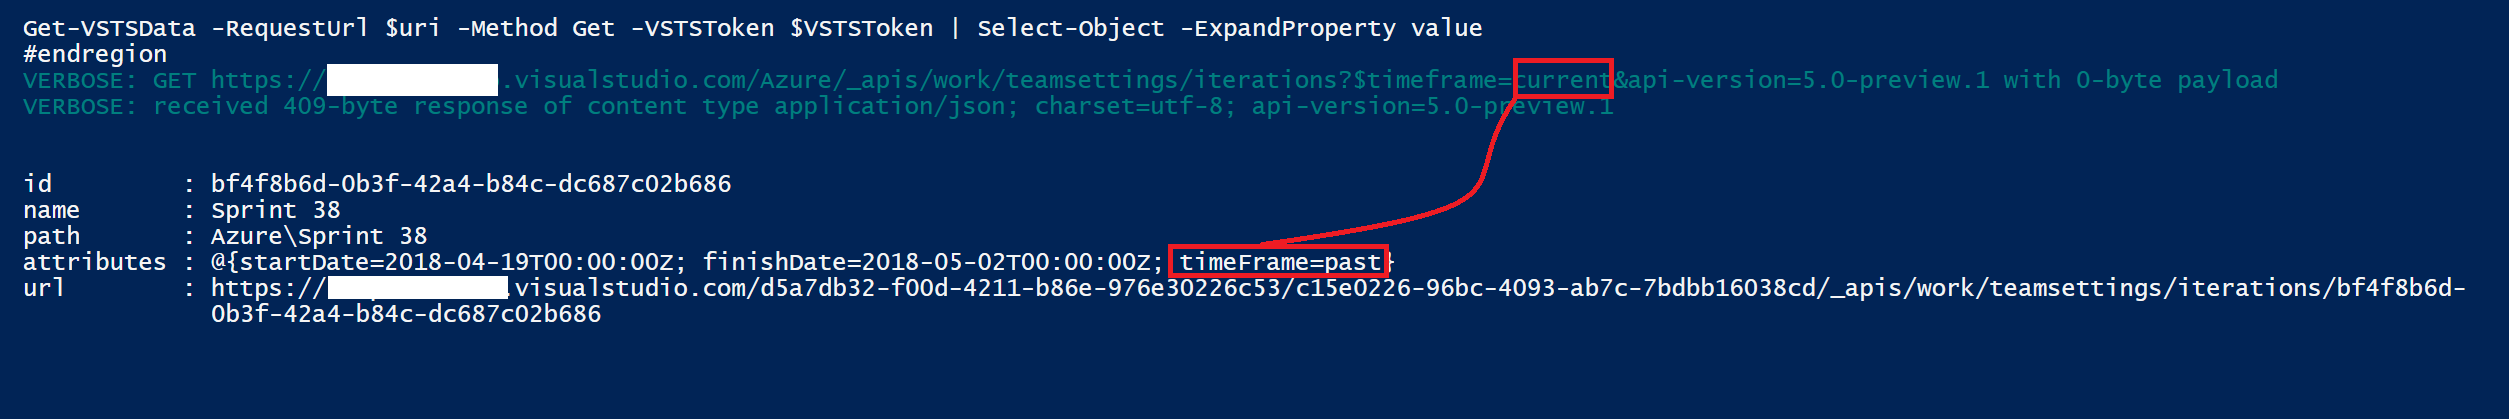 VSTS REST API List Iterations does not accept 'past' or